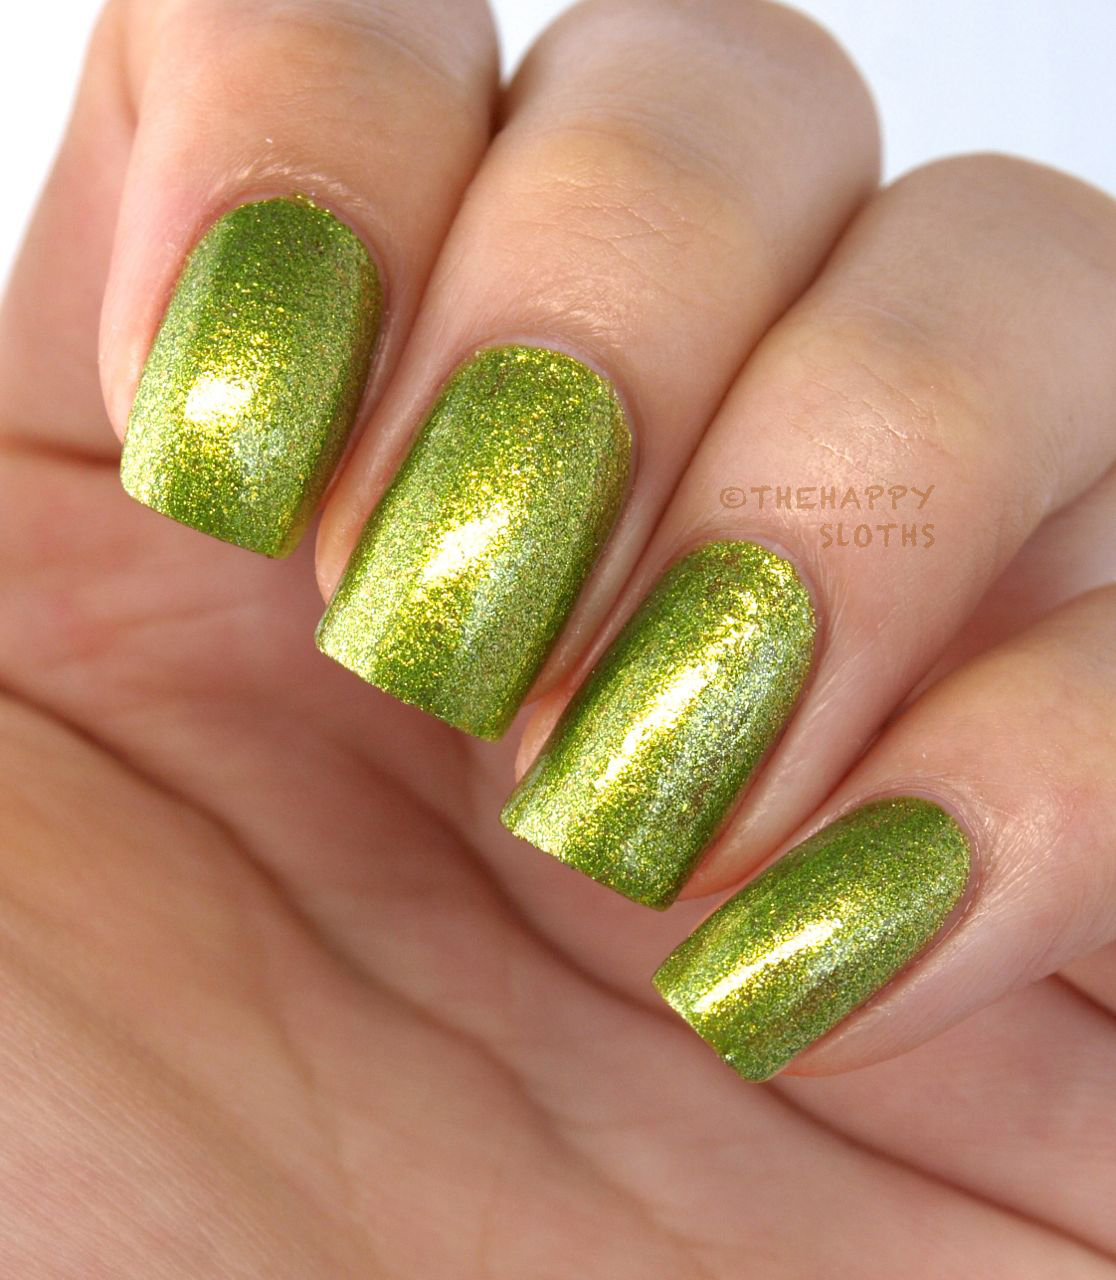 Deborah Lippmann Holiday 2014 Collection Weird Science Review and Swatches